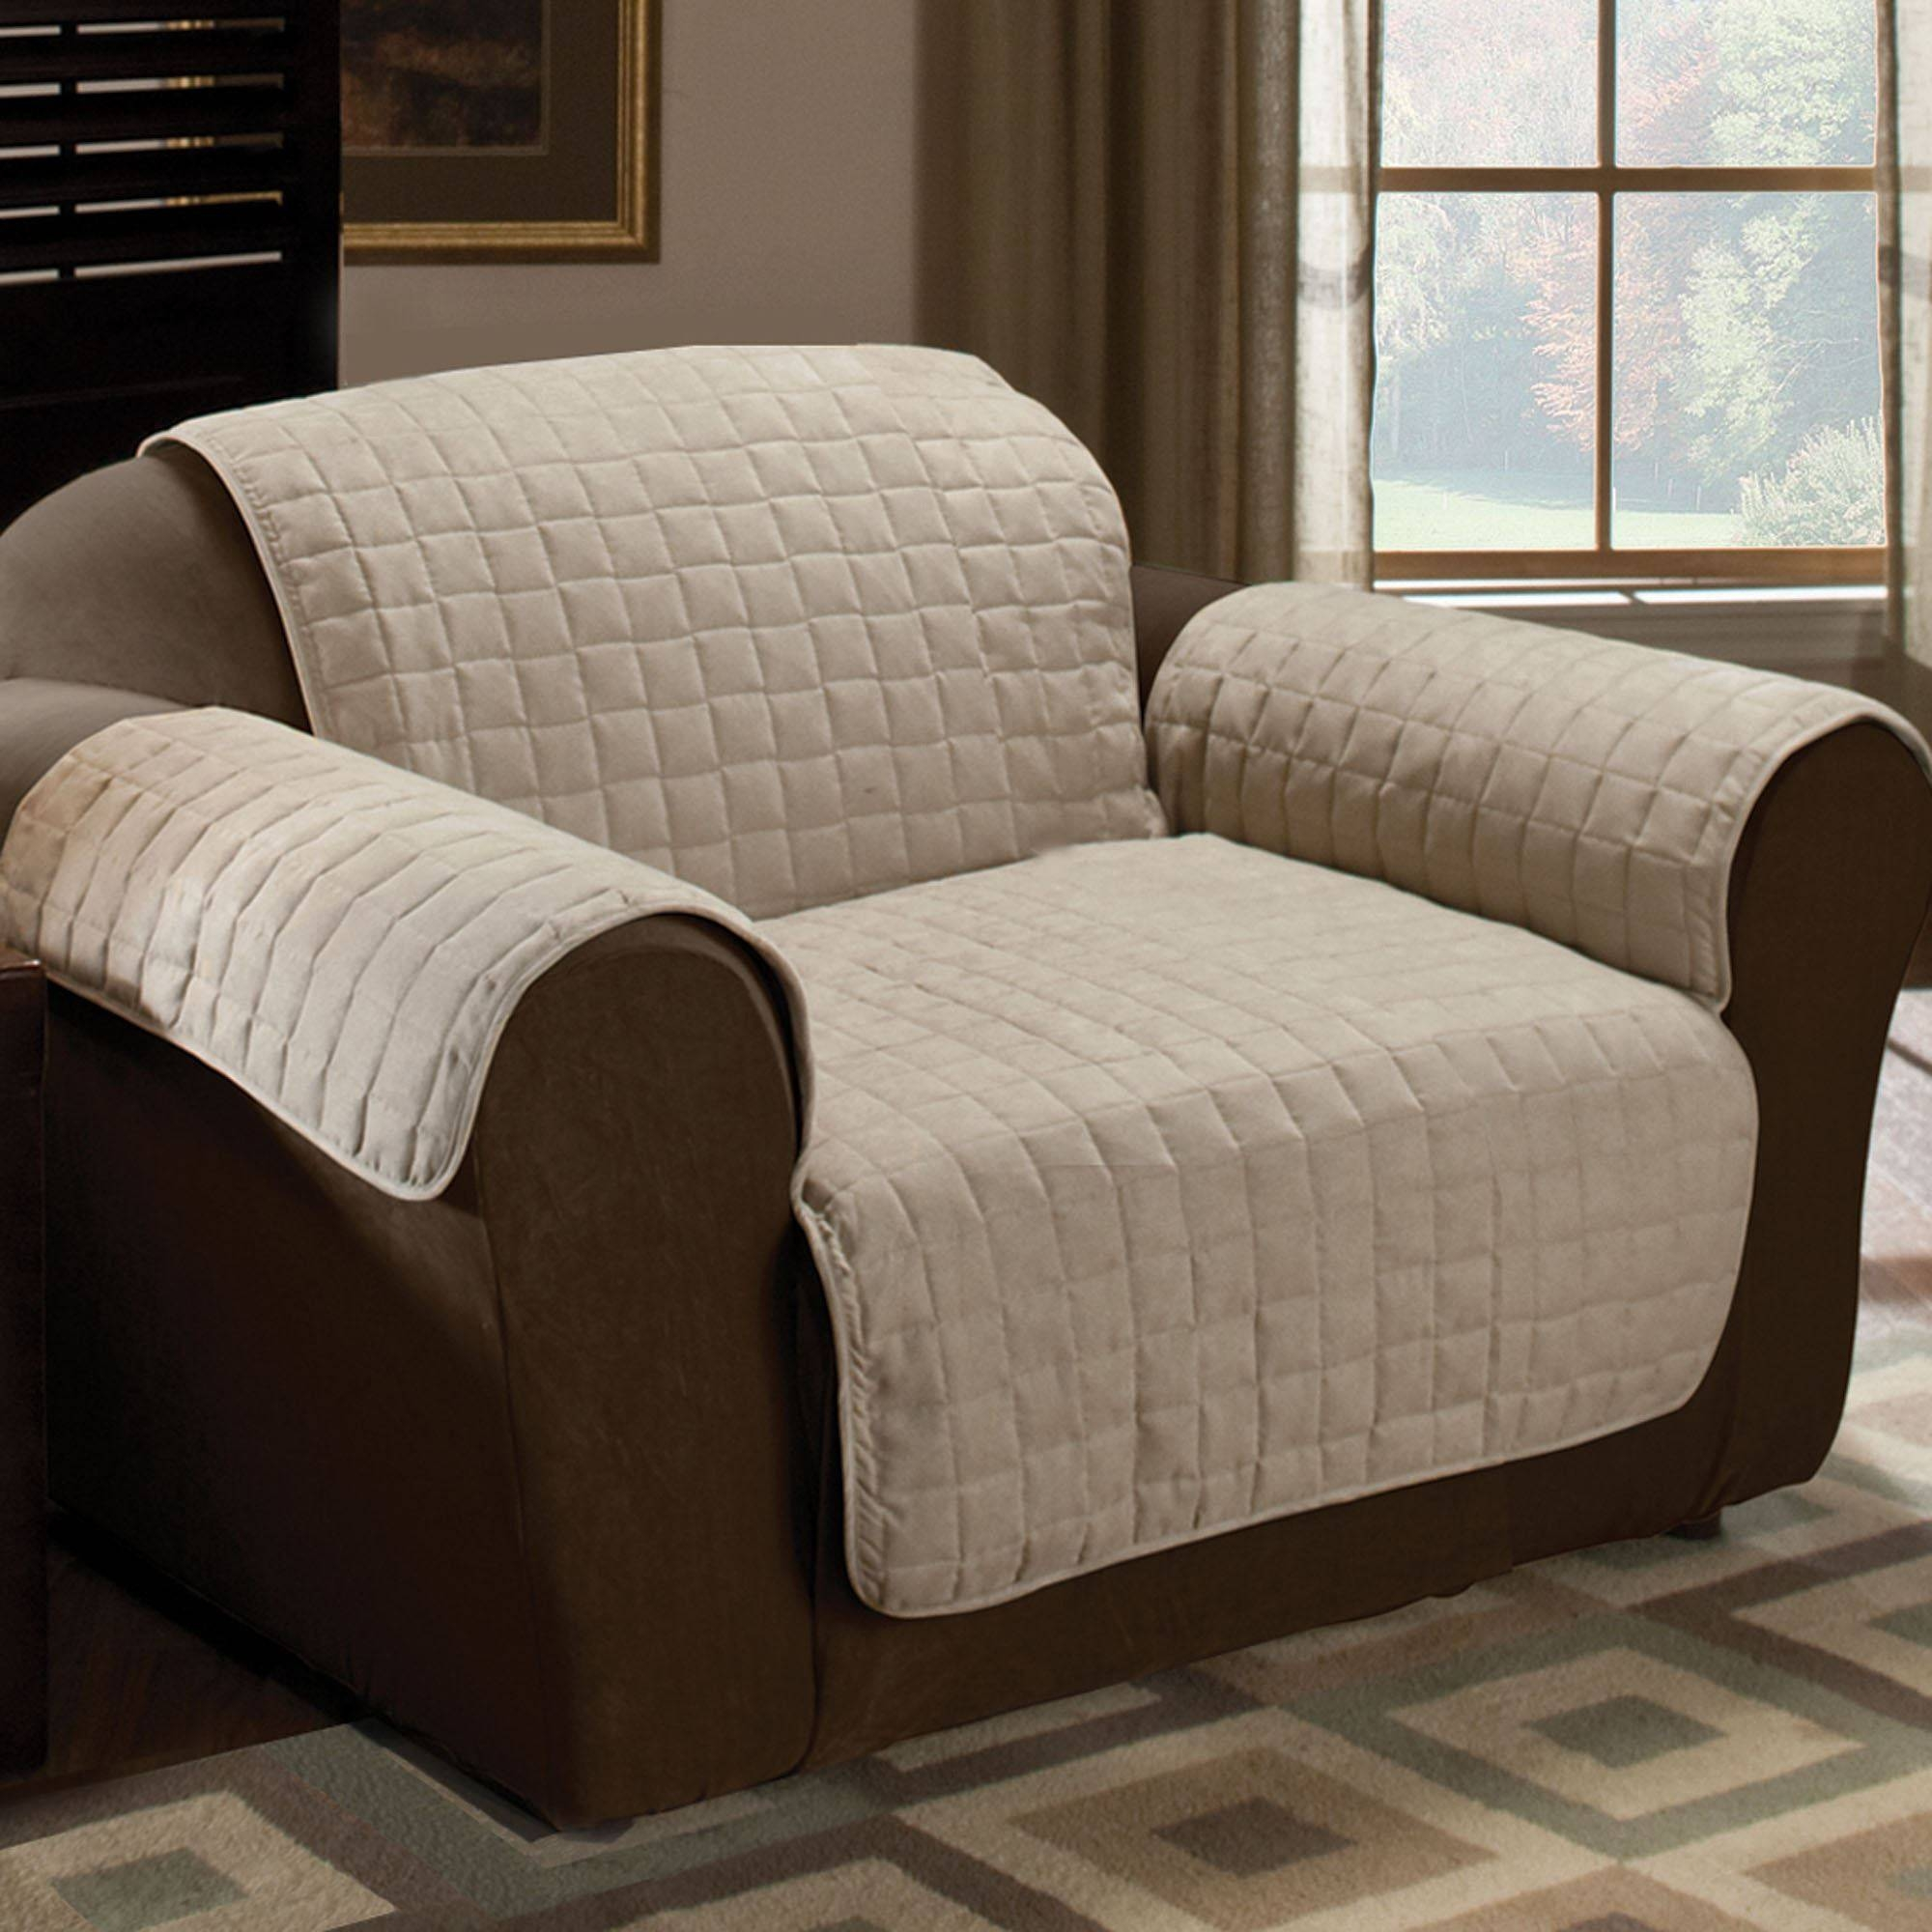 Faux Suede Pet Furniture Covers For Sofas, Loveseats, And Chairs Pertaining To Covers For Sofas And Chairs (View 5 of 15)